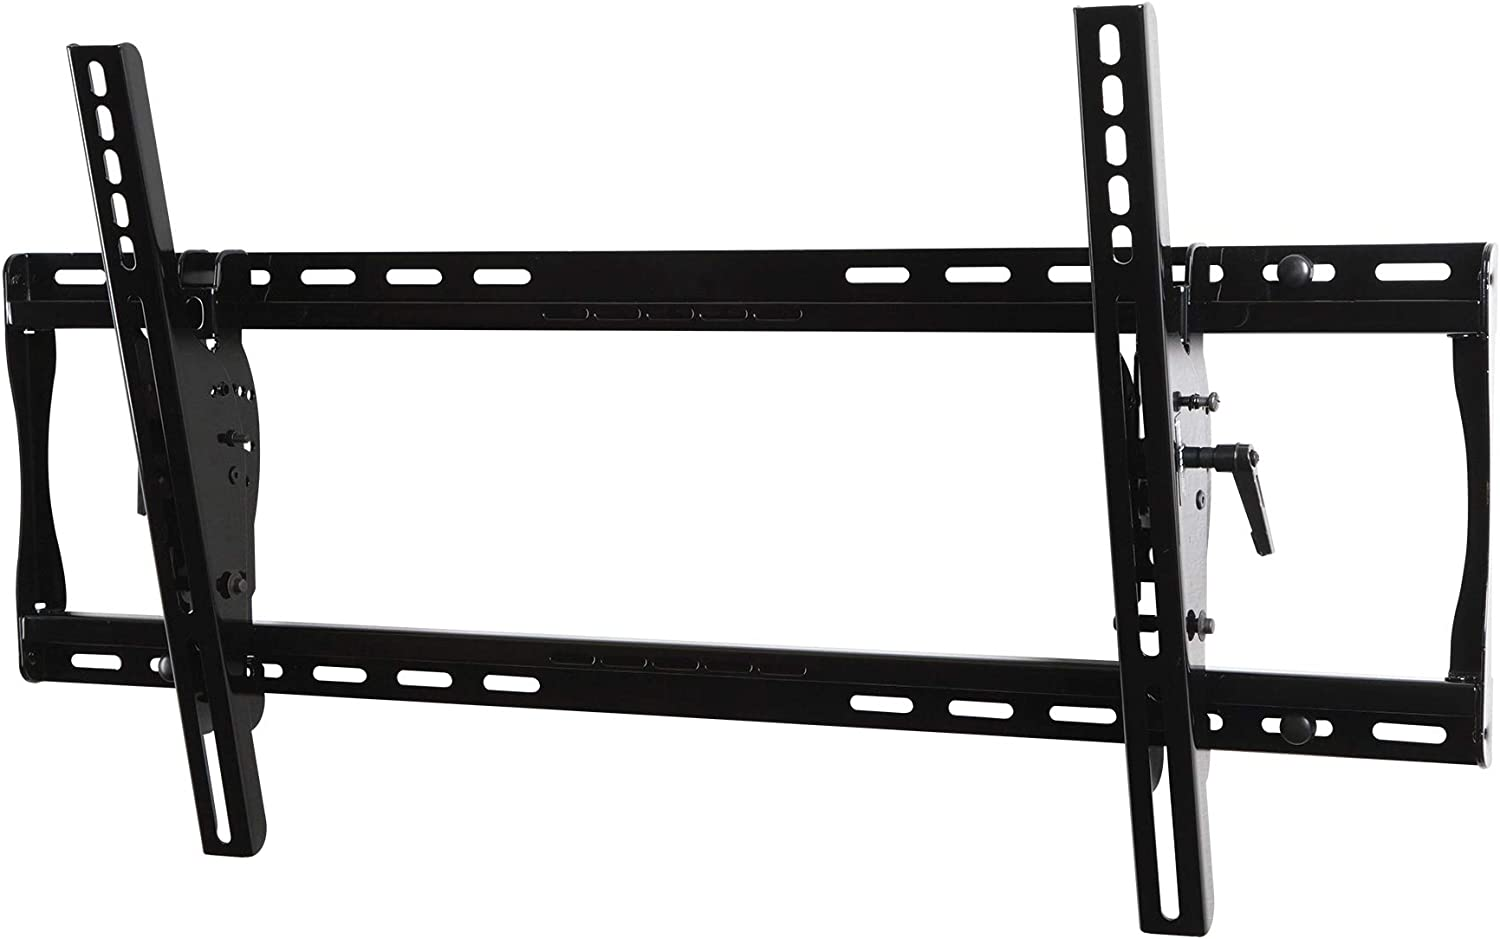 Peerless PT650 Universal Tilt Wall Mount for 39-Inch to 75-Inch Displays (Black)